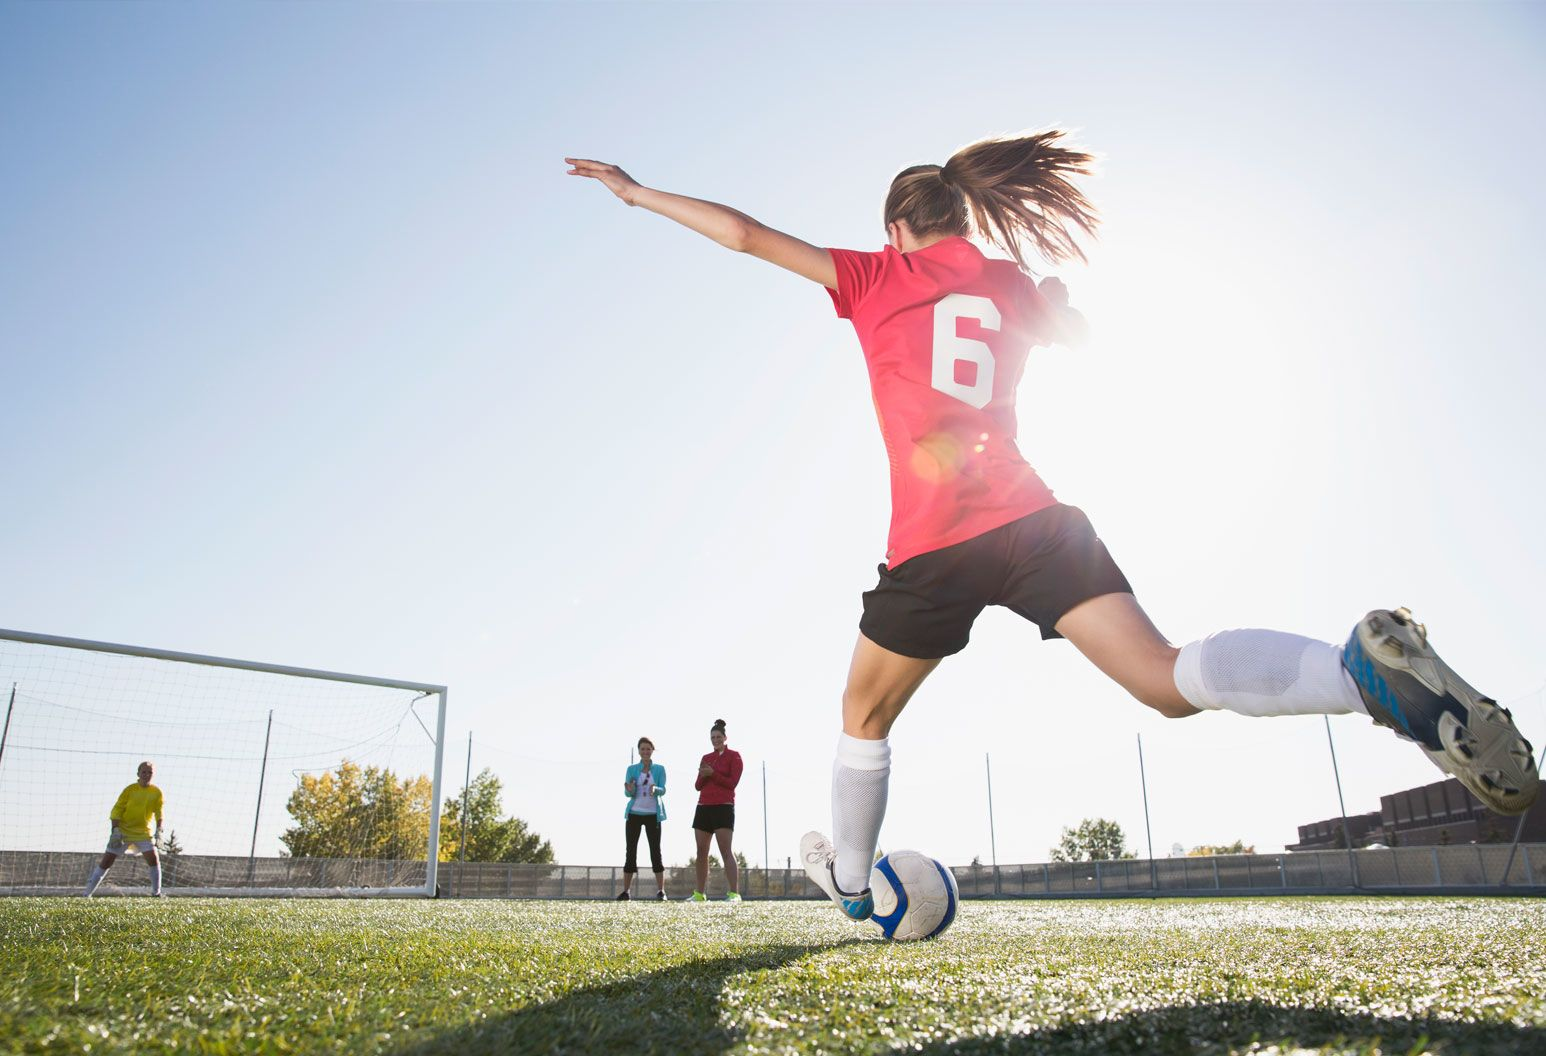 A young female soccer player is in motion to kick the ball into the soccer goal.